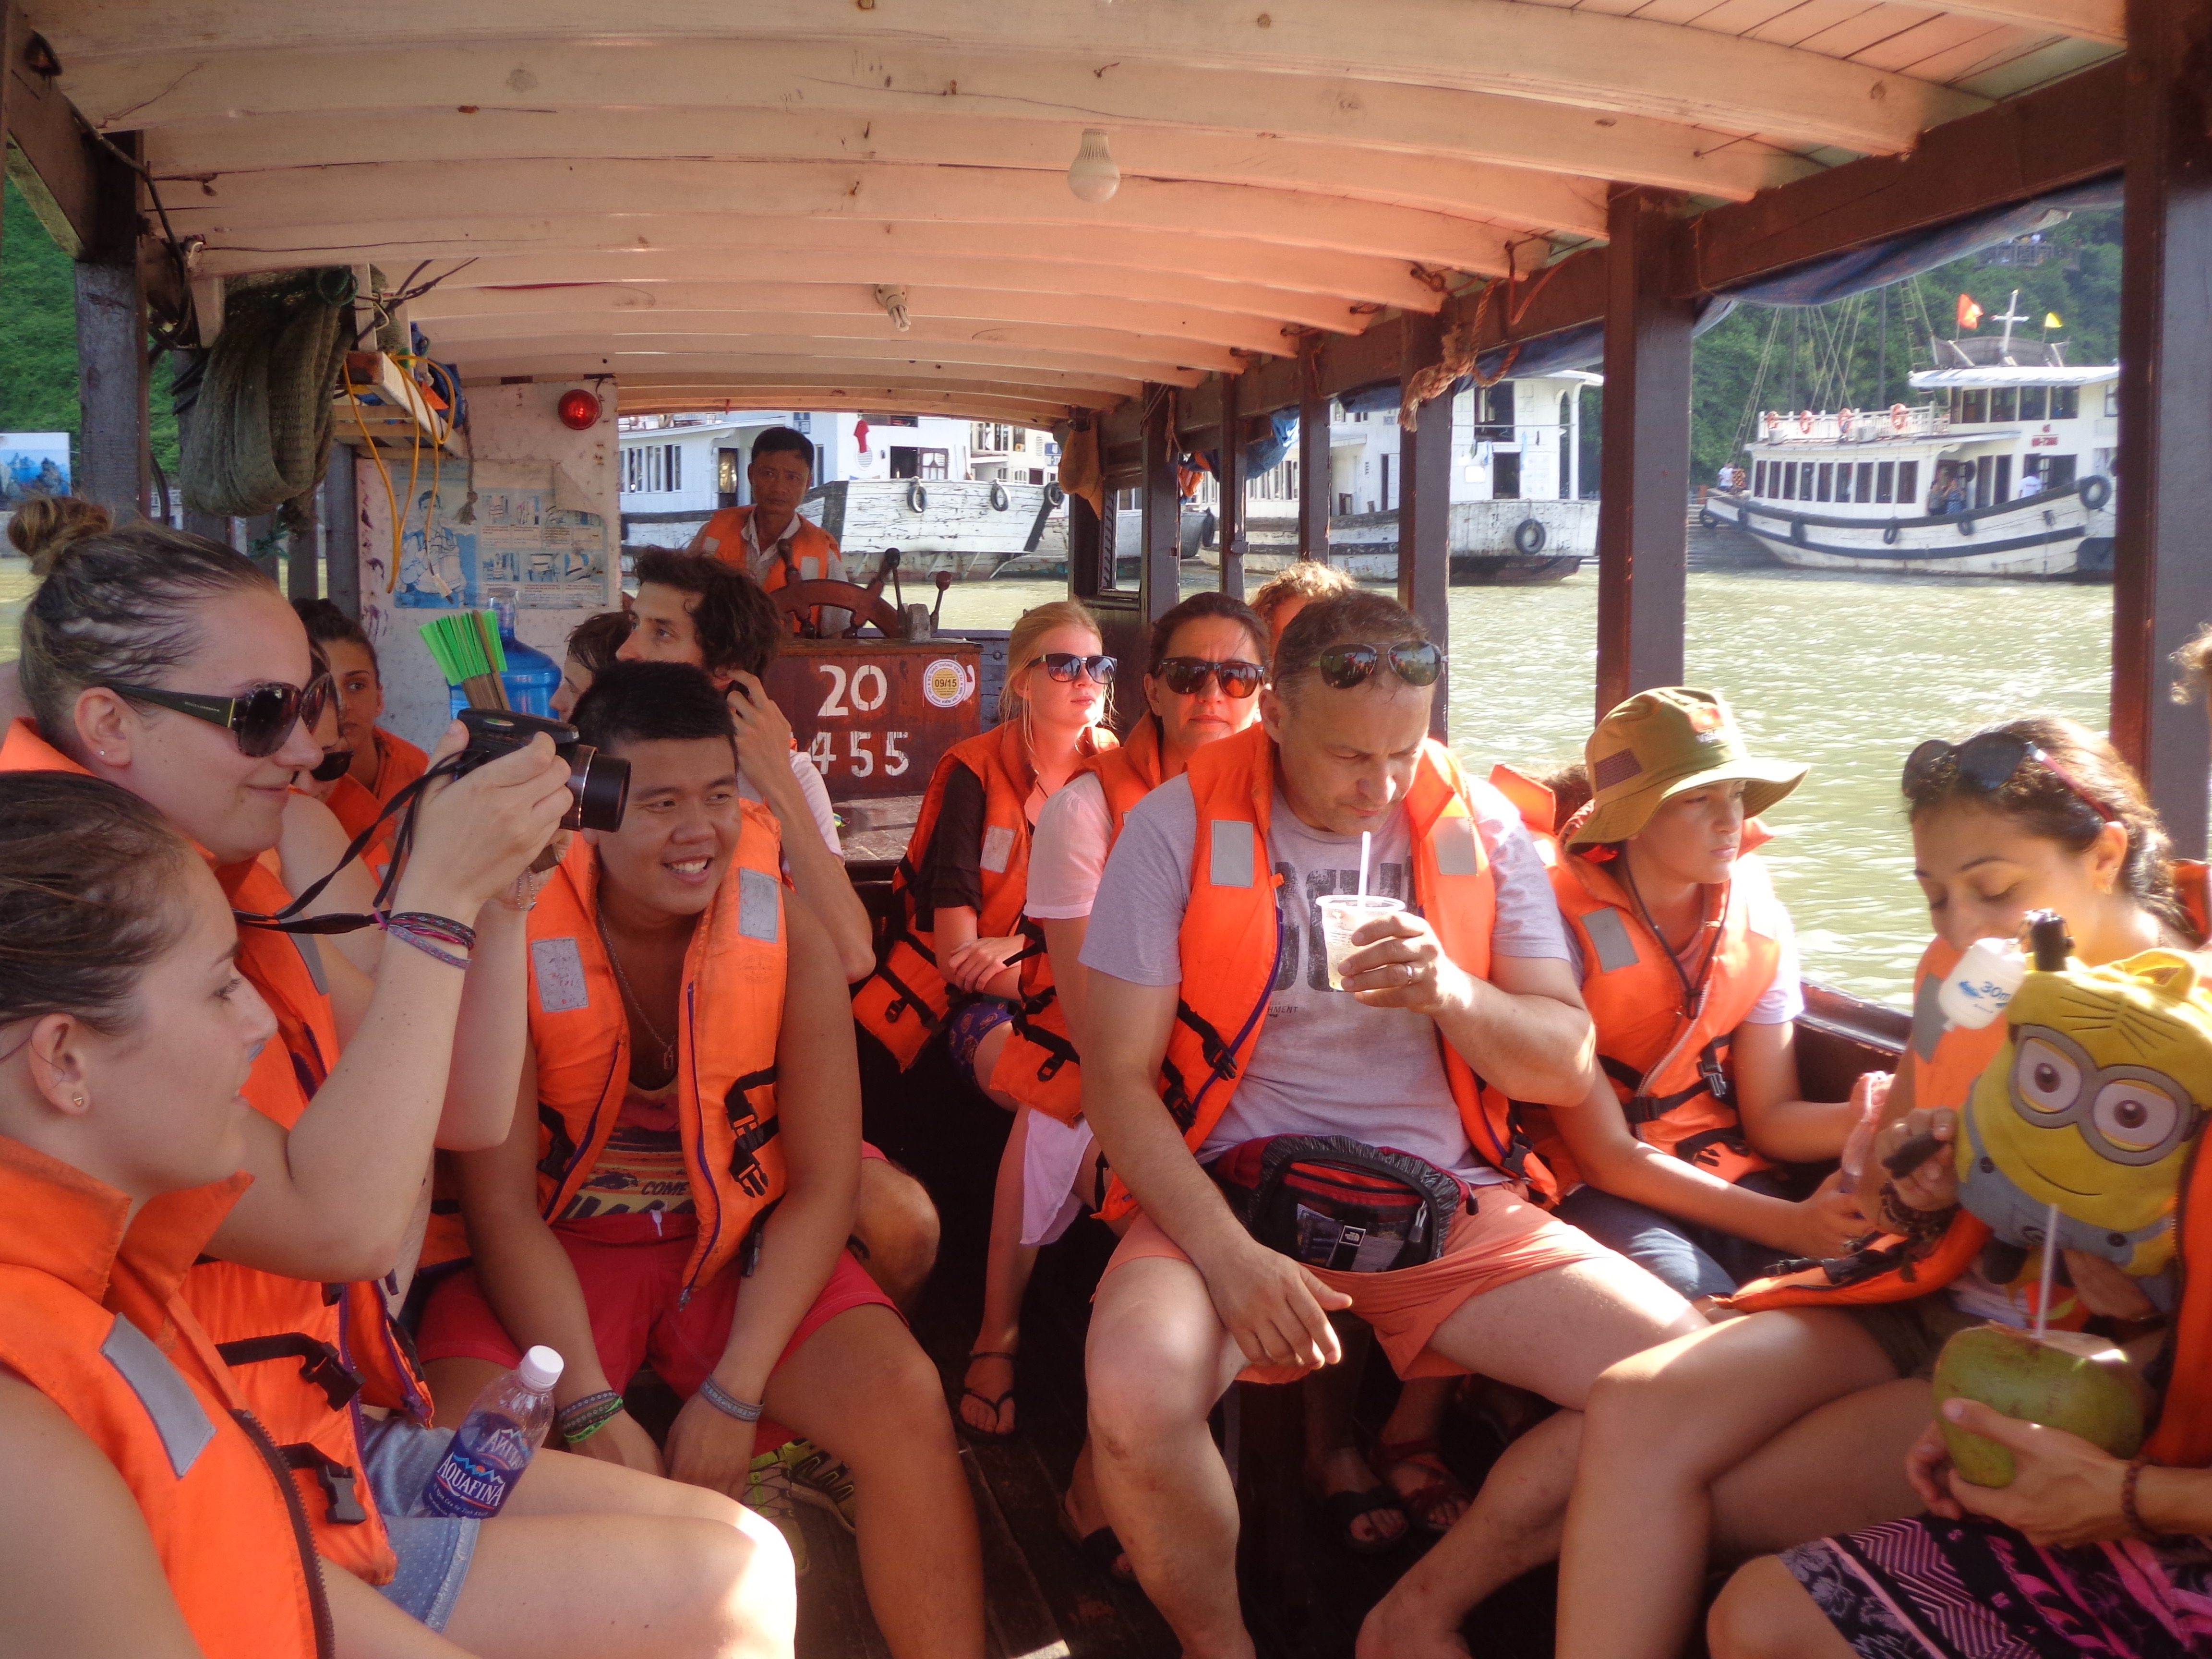 Our group being transported to our lodging vessel.